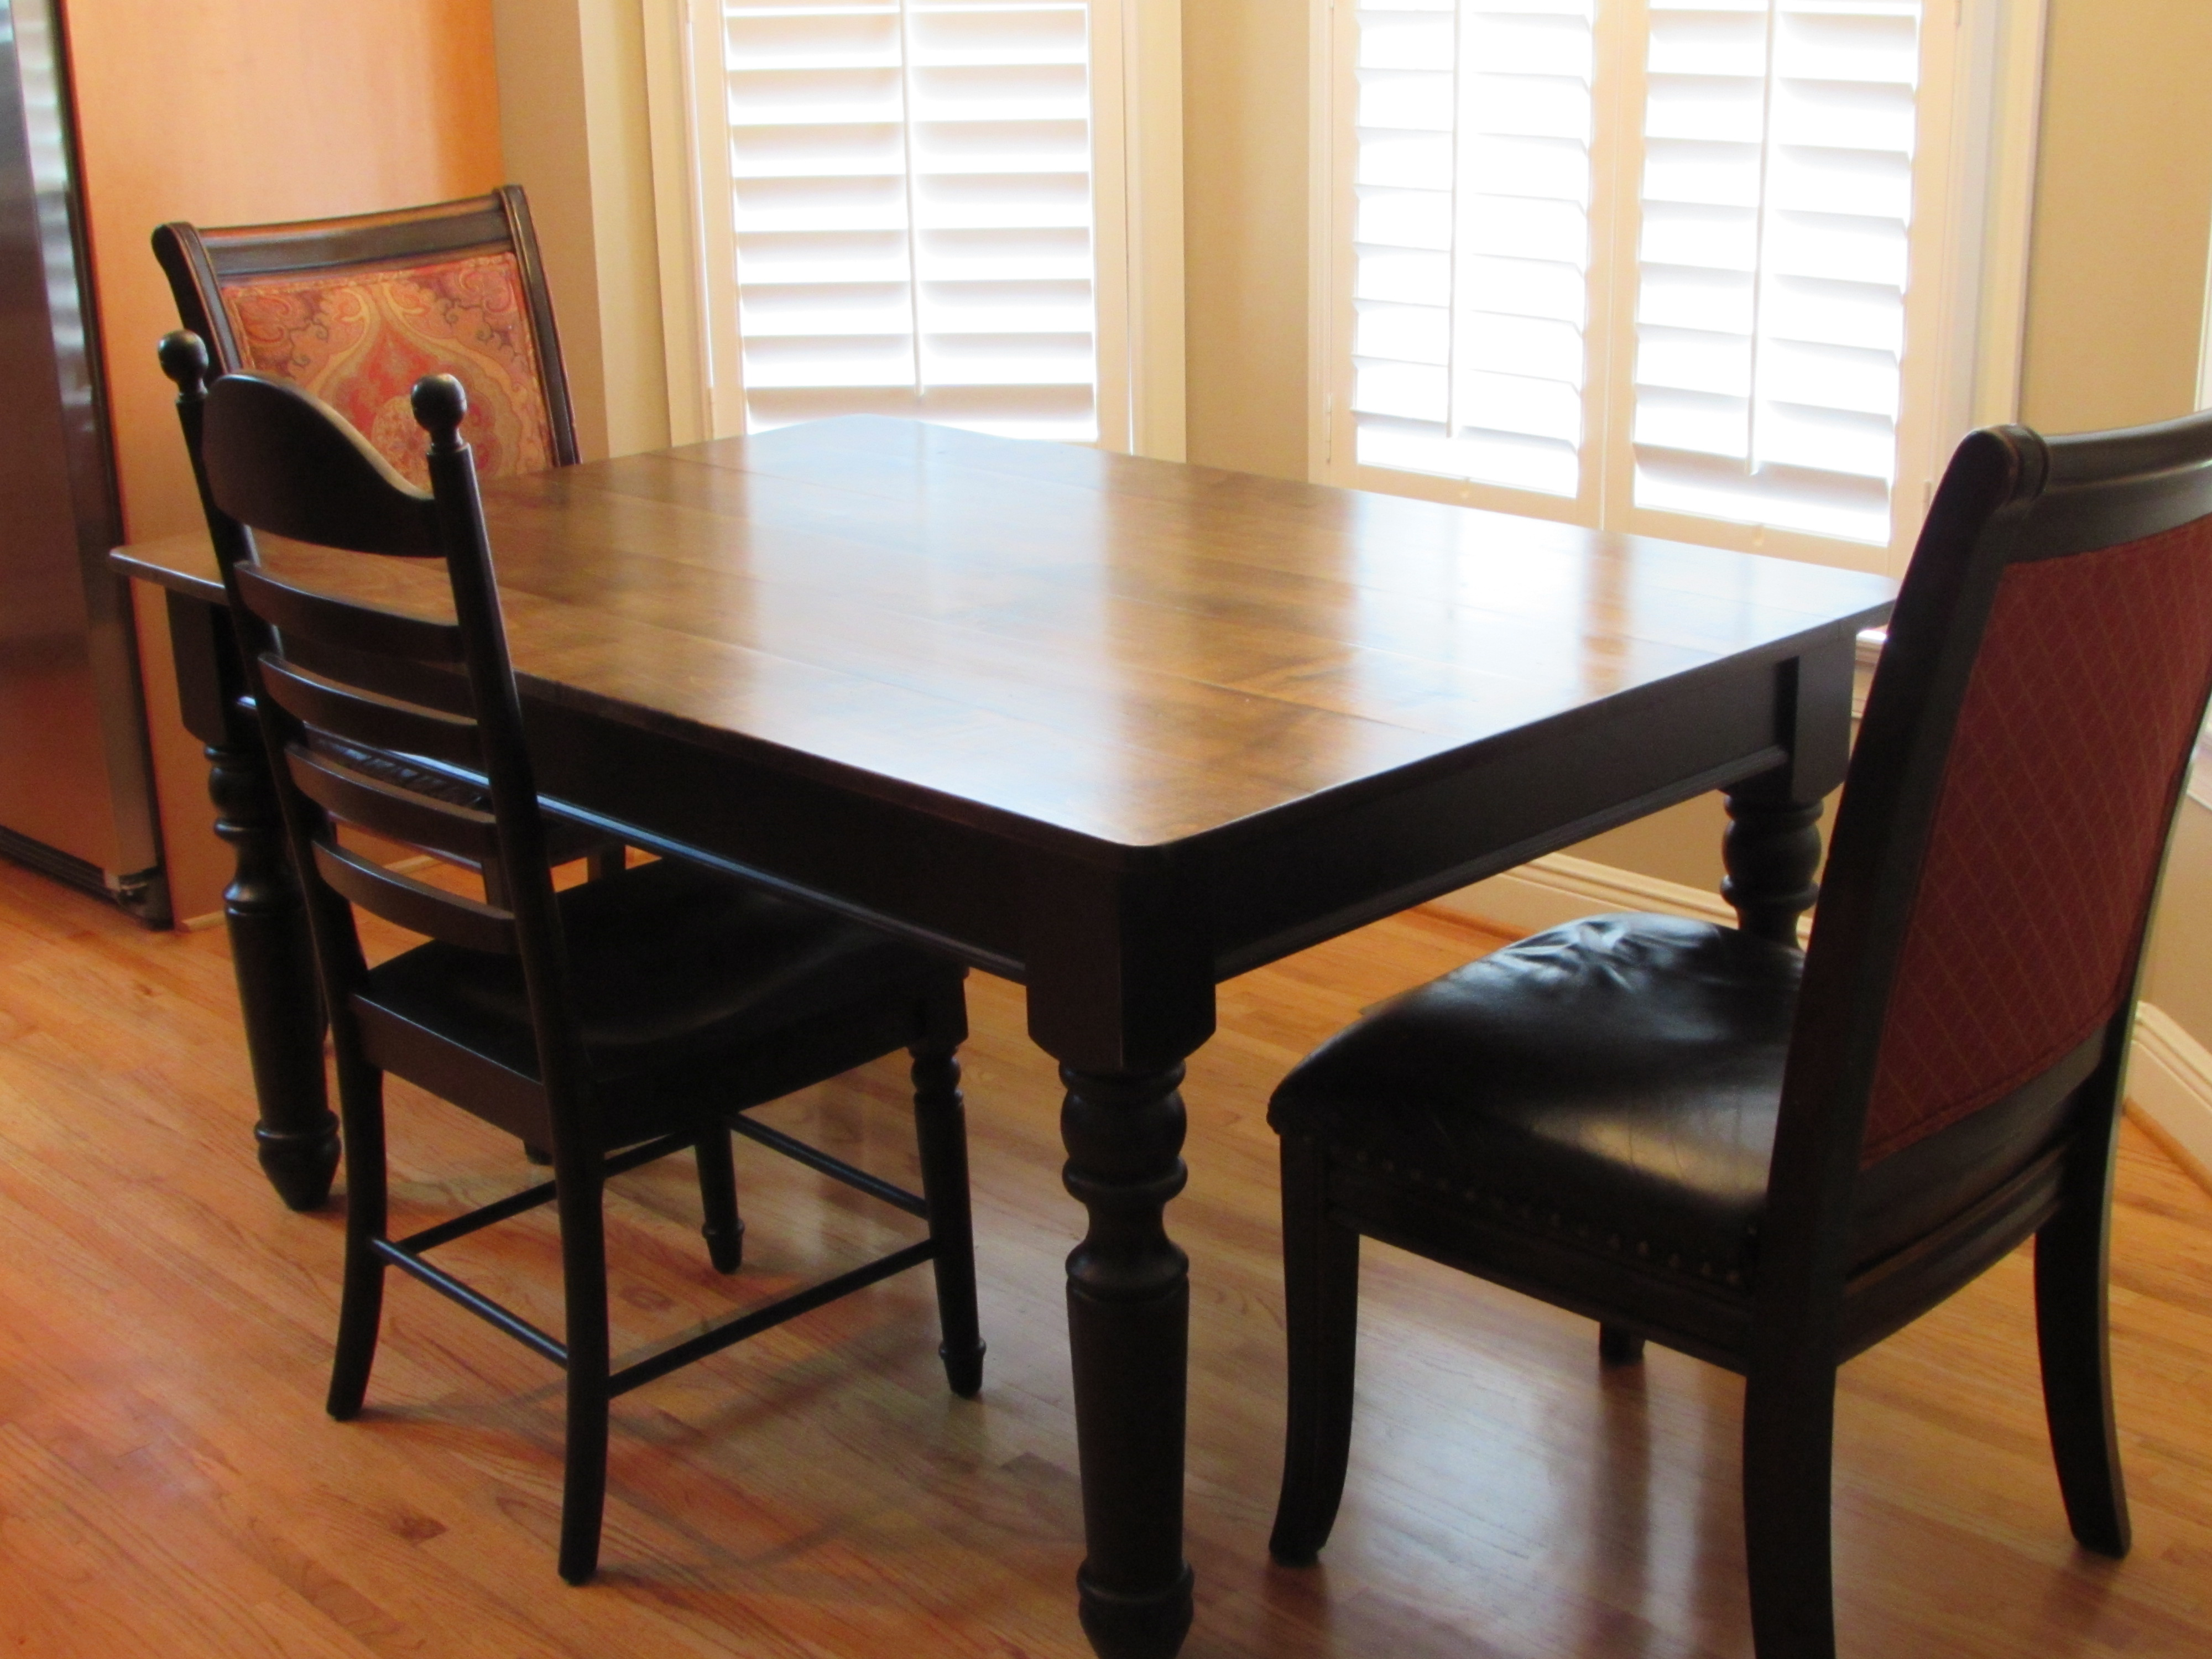 Handmade kitchen table 28 images handmade custom kitchen table by black sons furniture oak - Custom kitchen table ...